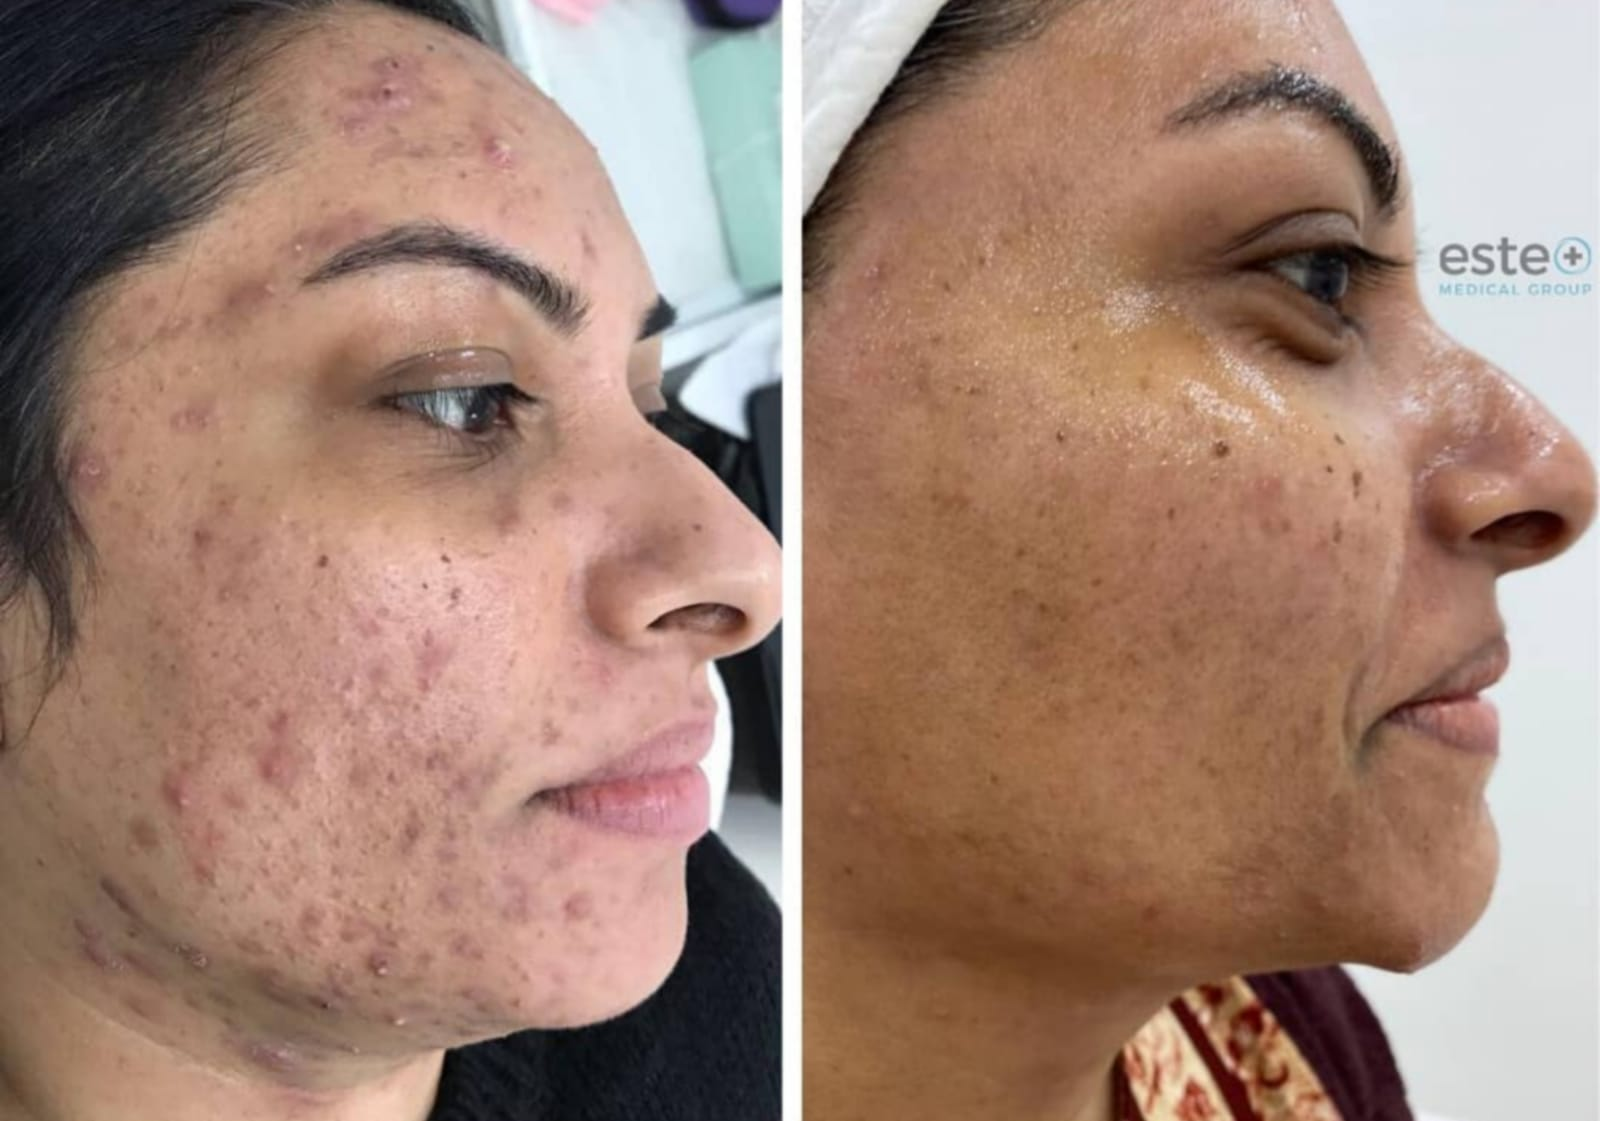 Pixel laser resurfacing before and after